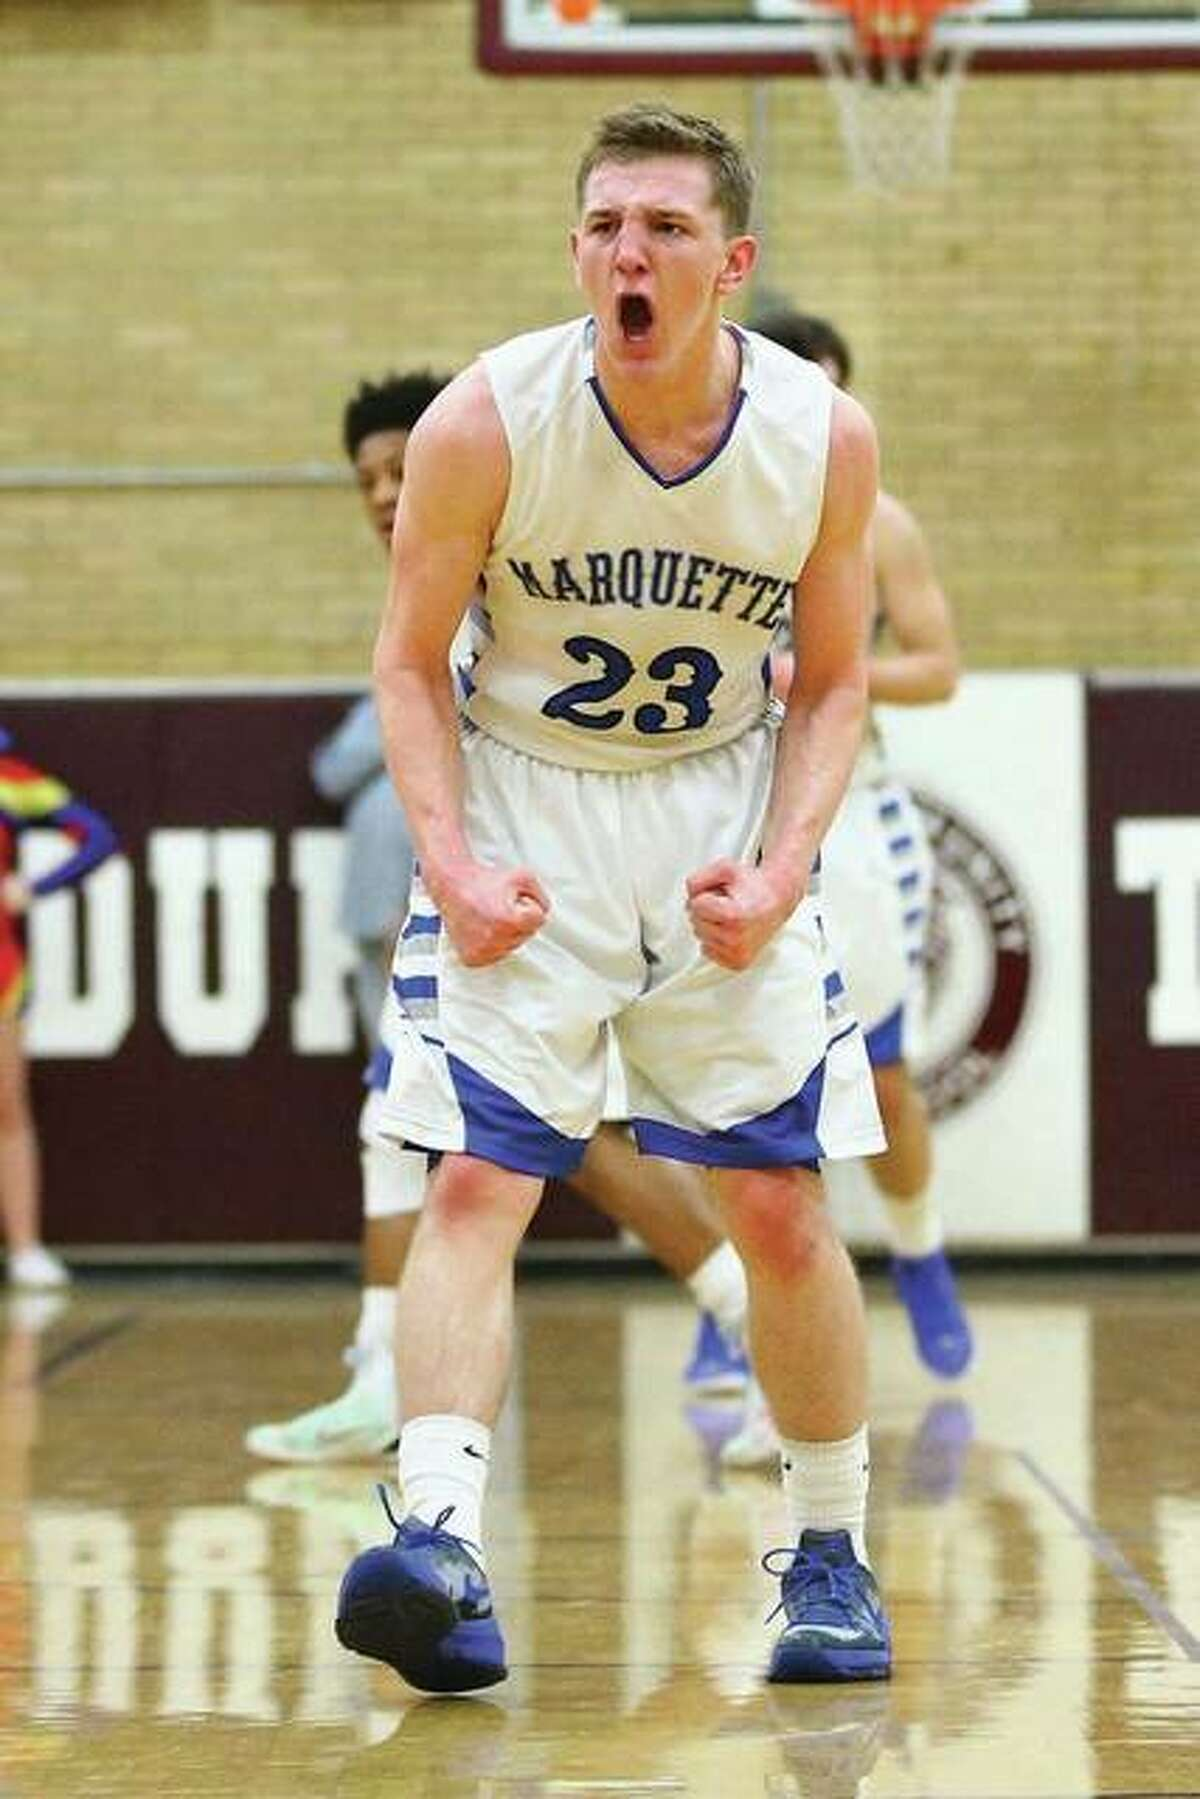 Marquette's Reagan Snider, shown reacting after hitting a 3-pointer last season, is one of the returning Explorers who have made the move up to Class 3A this season.